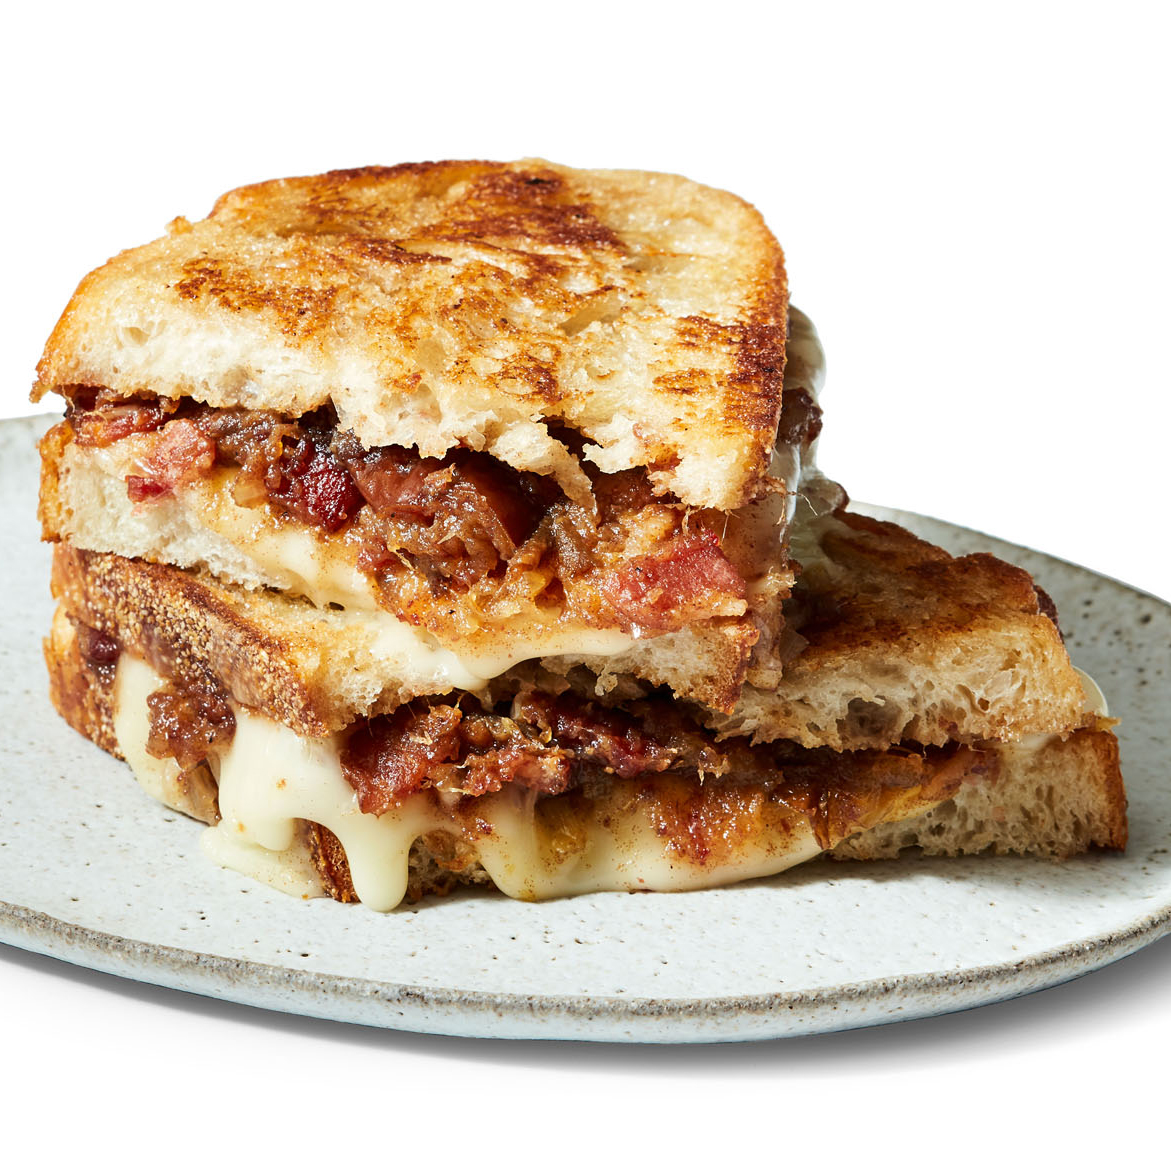 Grilled Cheese with Bacon-Date Jam